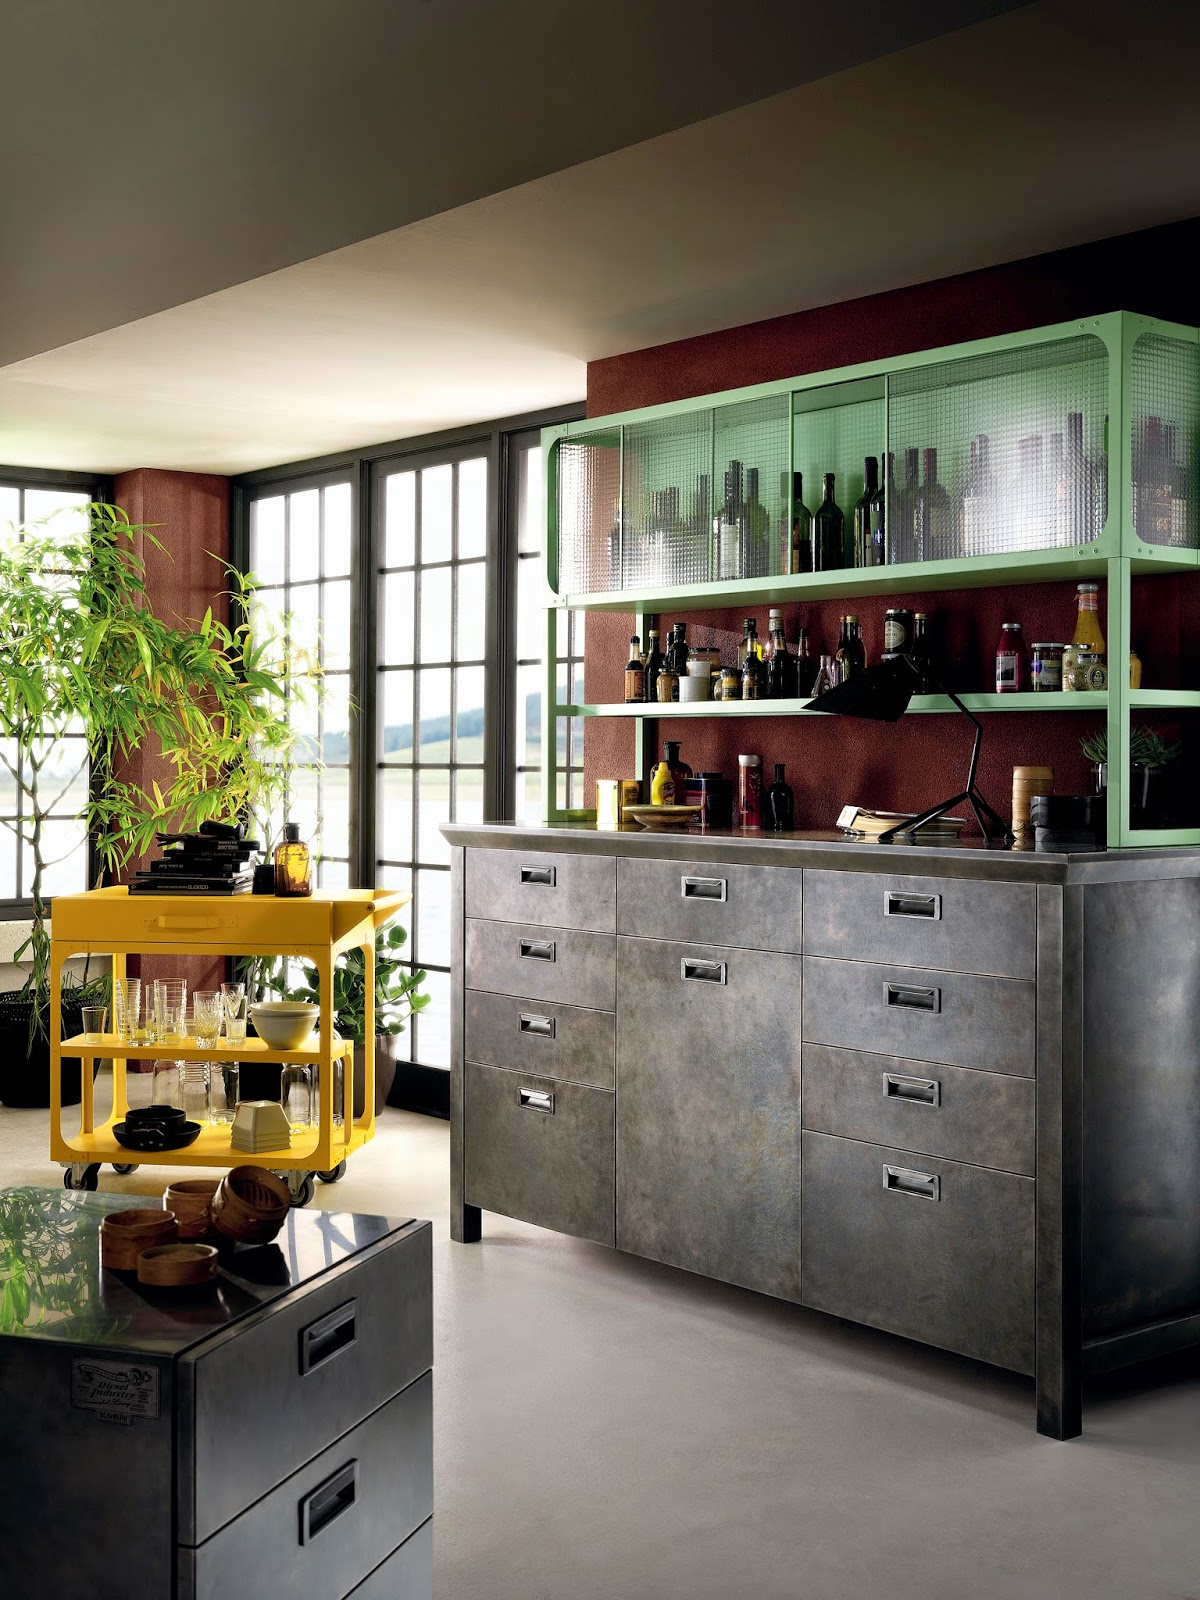 DIESEL SOCIAL KITCHEN AT SALONE DEL MOBILE 2015 - Simplicity is Chic